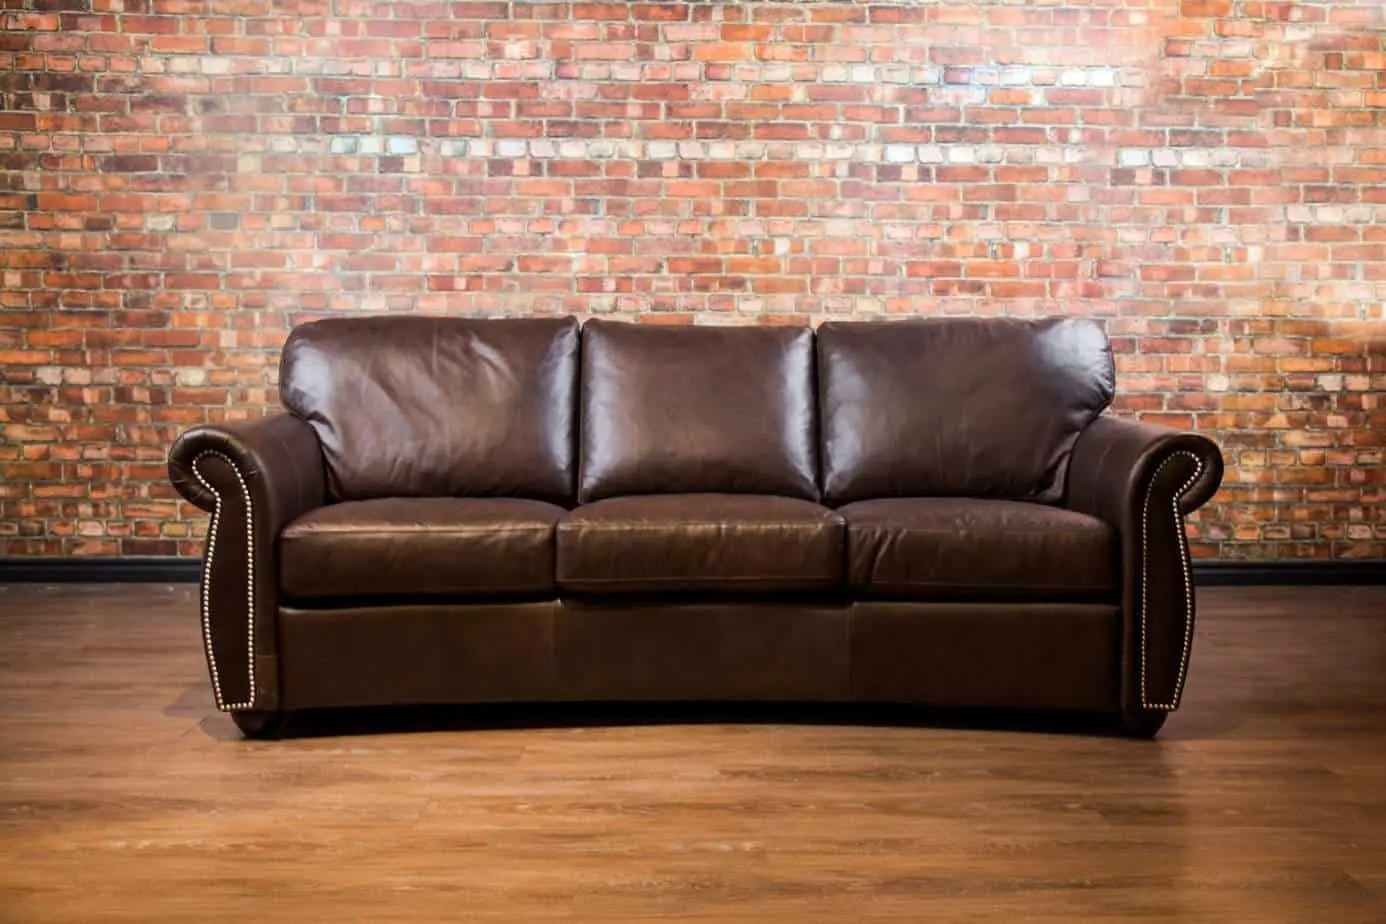 Good Furniture Stores Toronto Leather Furniture Deals Canada Freebies Assalamualaikum Cute